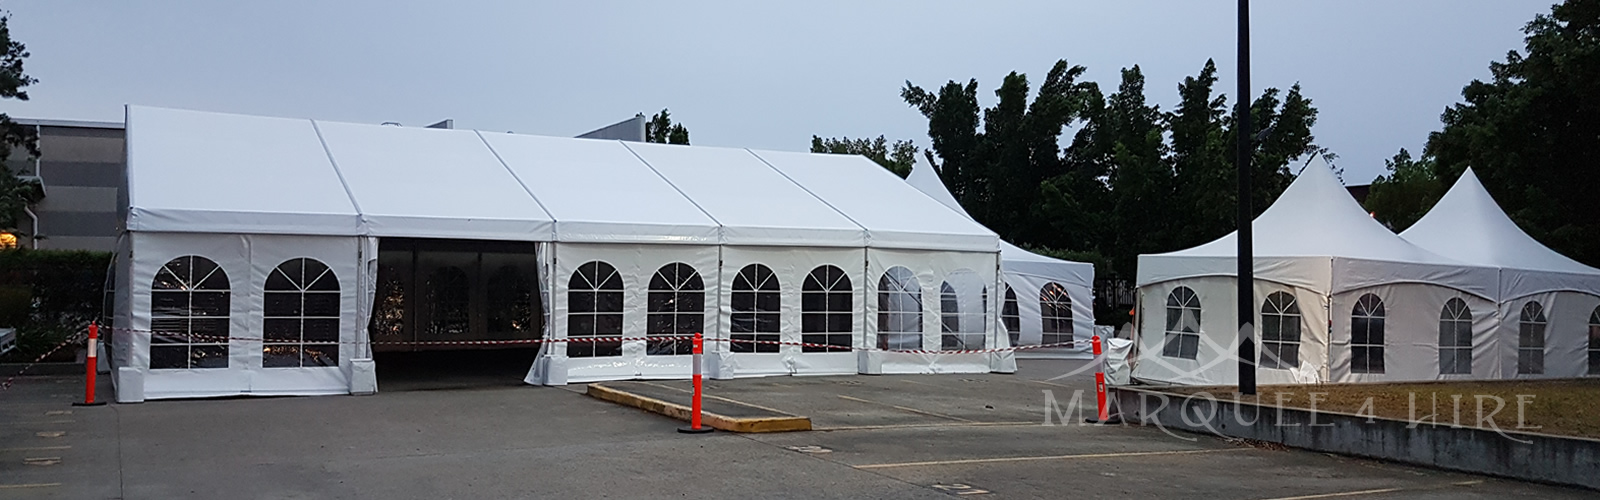 frame marquee hire sydney